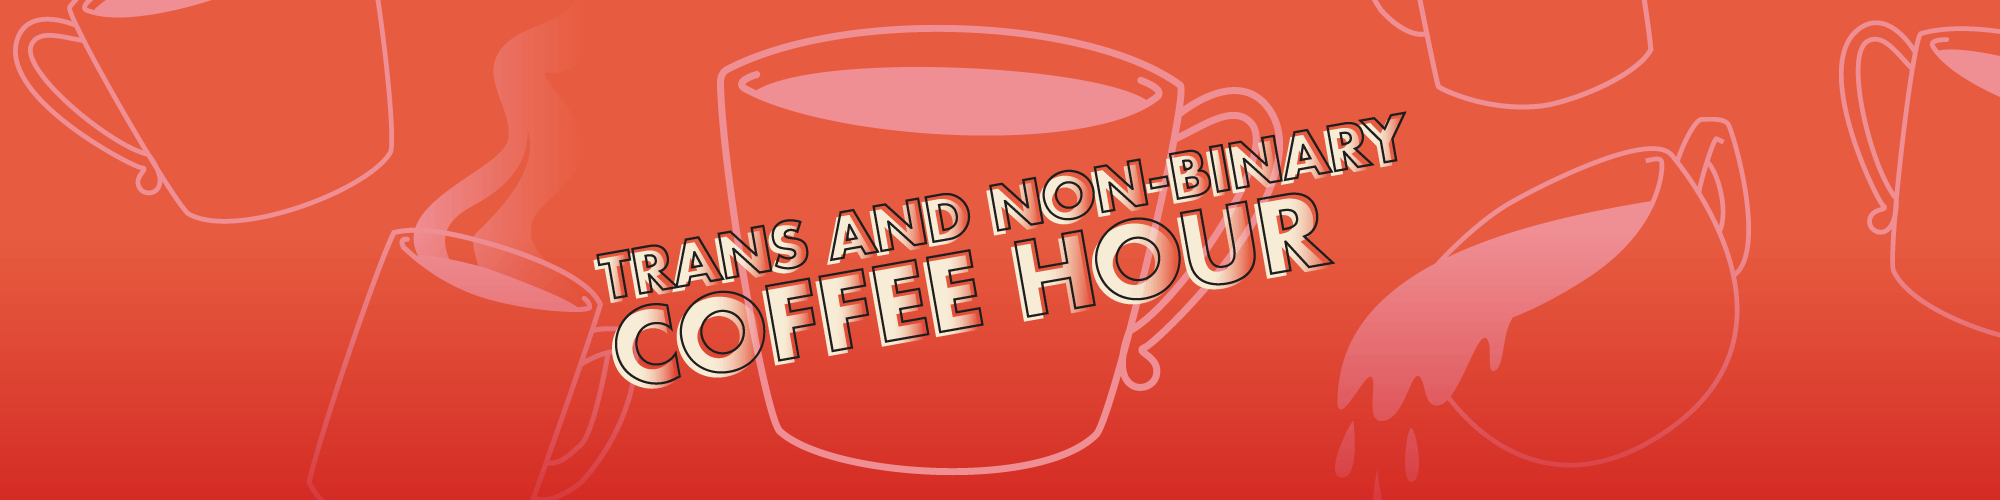 Trans and Non-Binary Coffee Hour